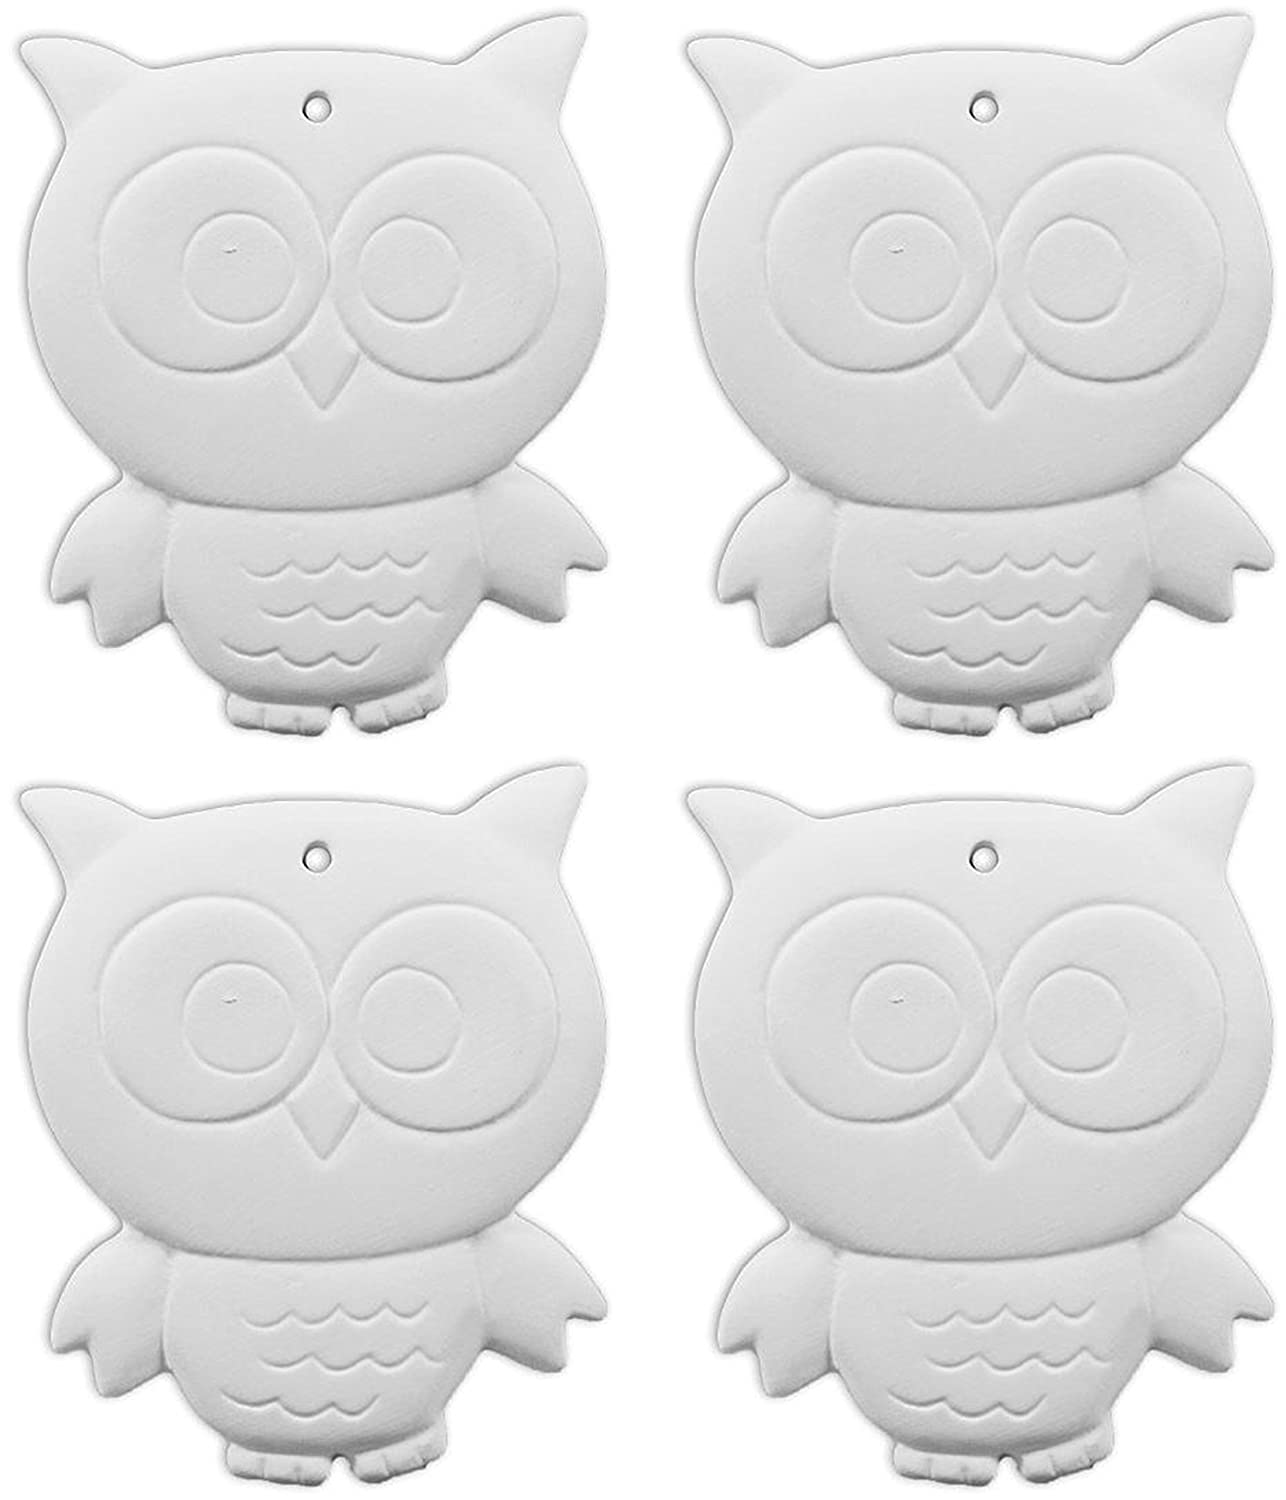 The Adorable Owl Ornament - Set of 4 - Paint Your Own Ceramic Keepsake New Hampshire Craftworks